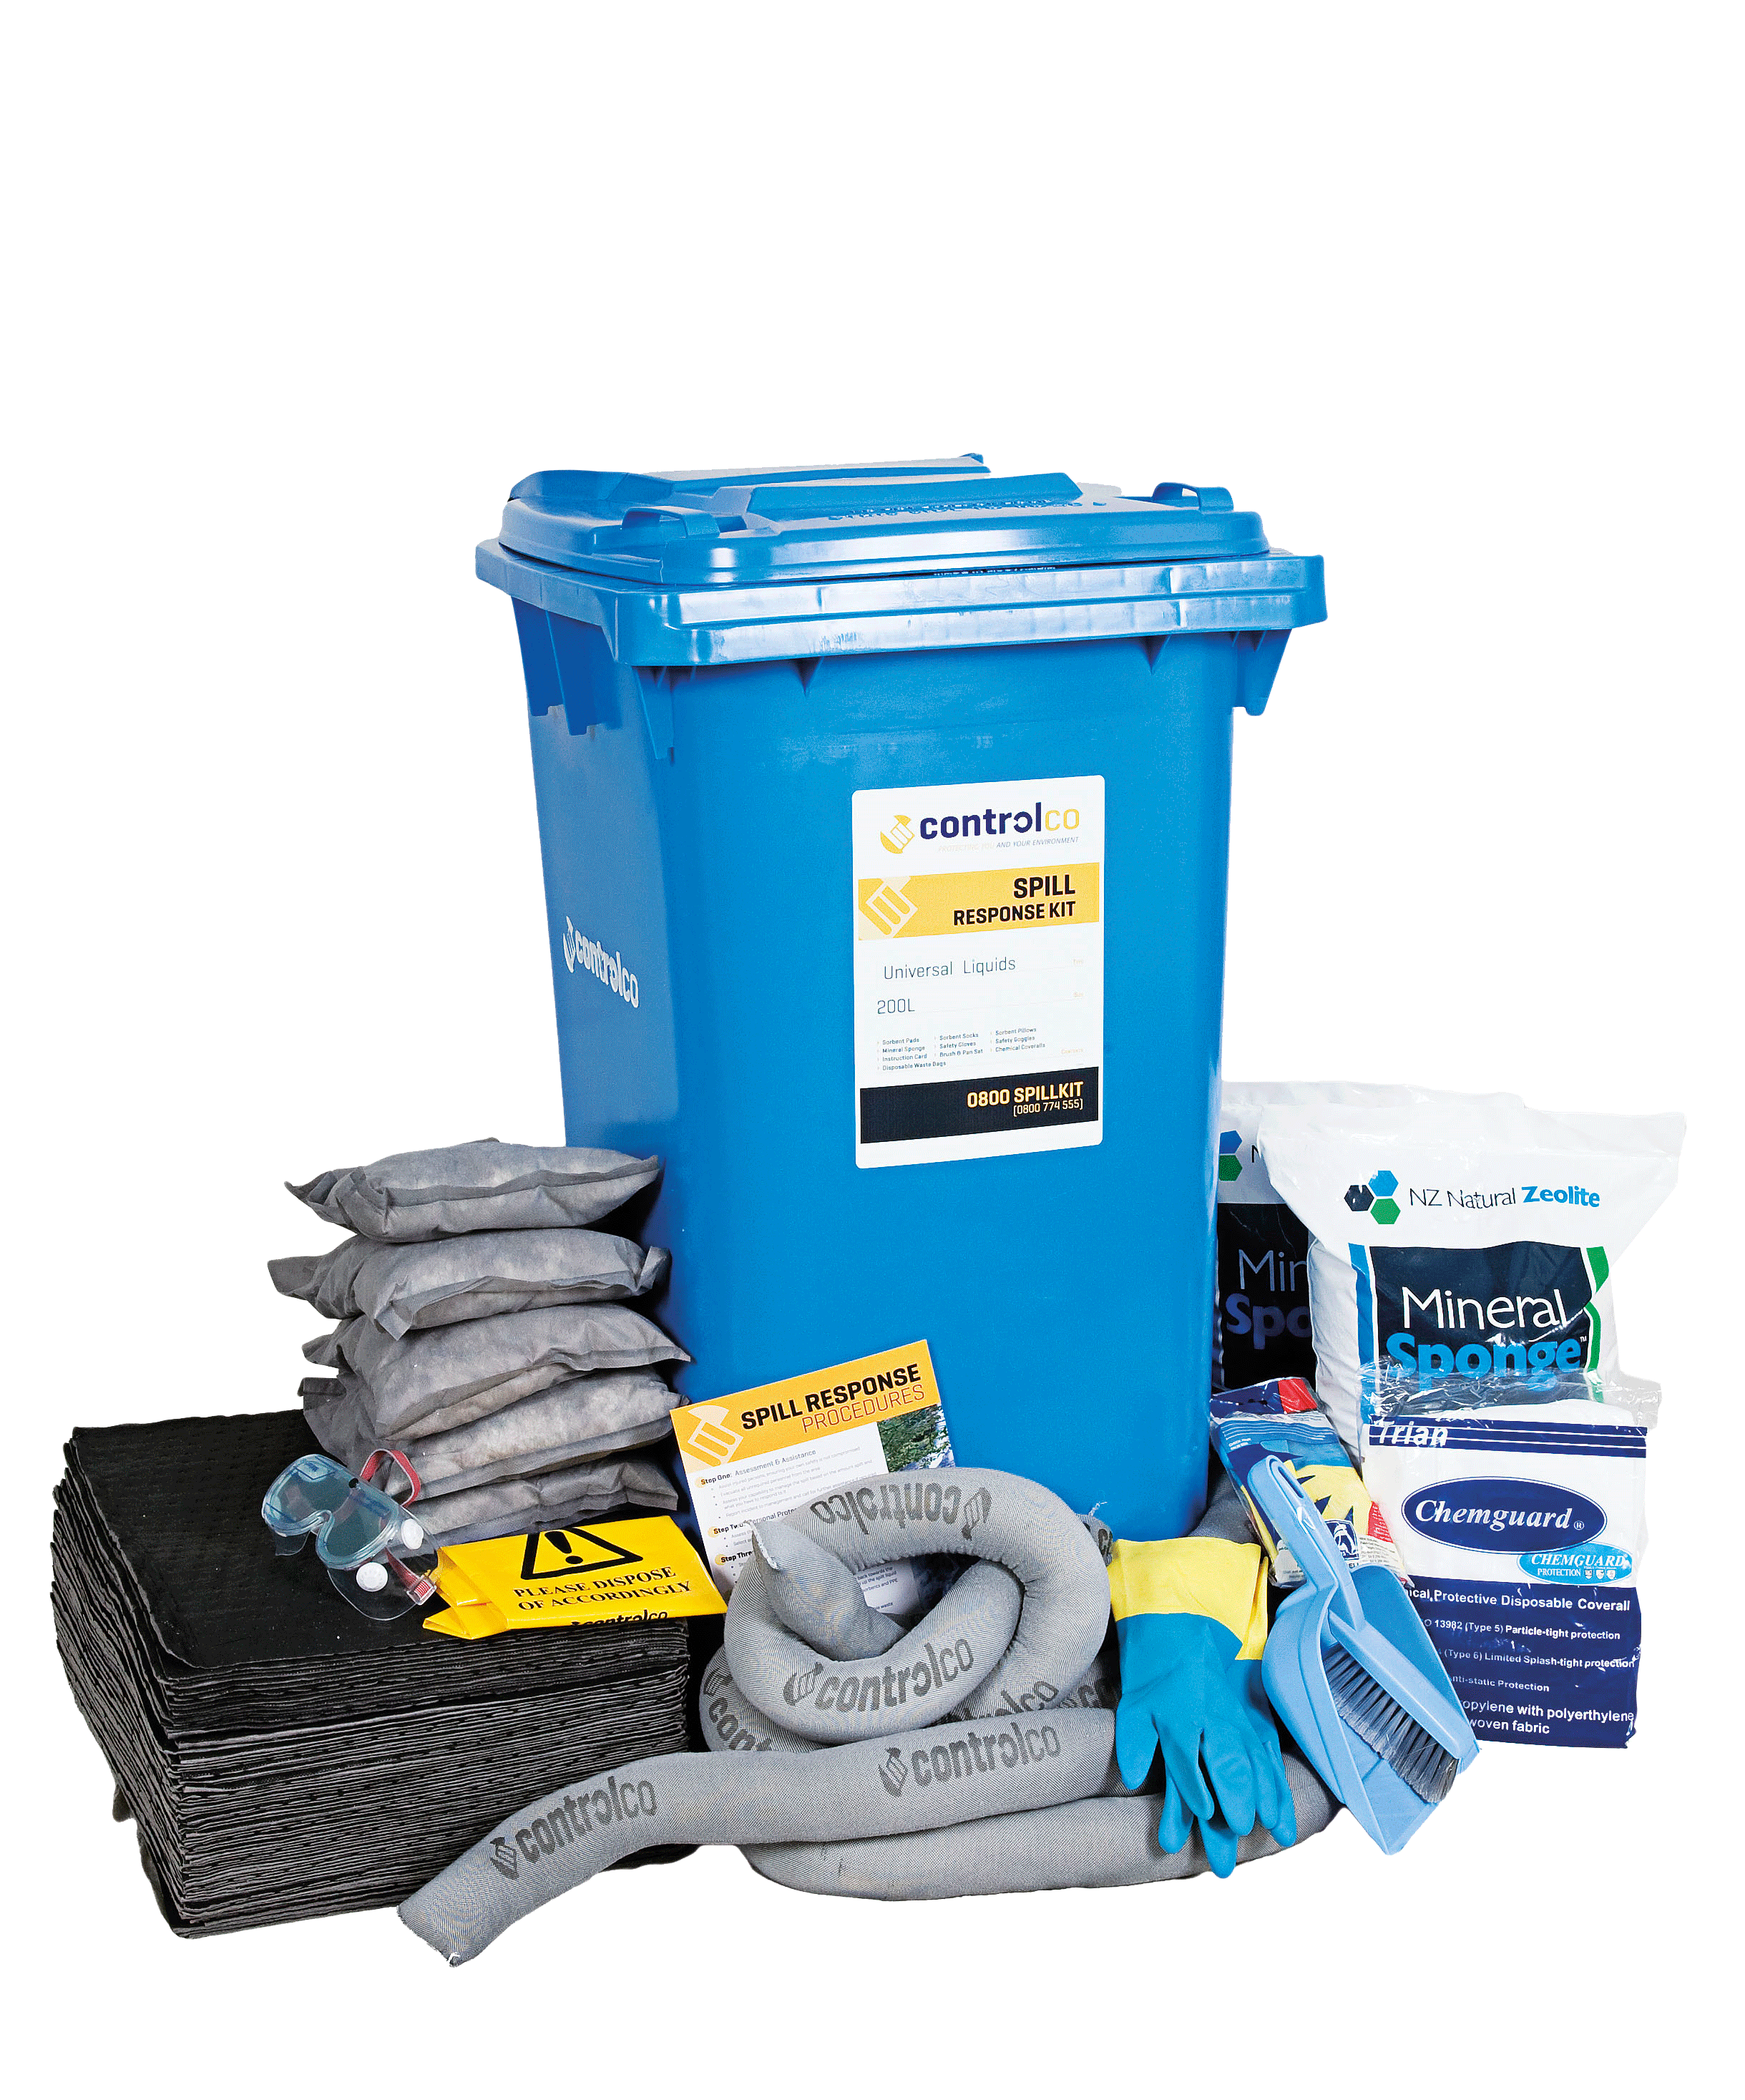 Mobile Spill Kit - Universal - 100L product image